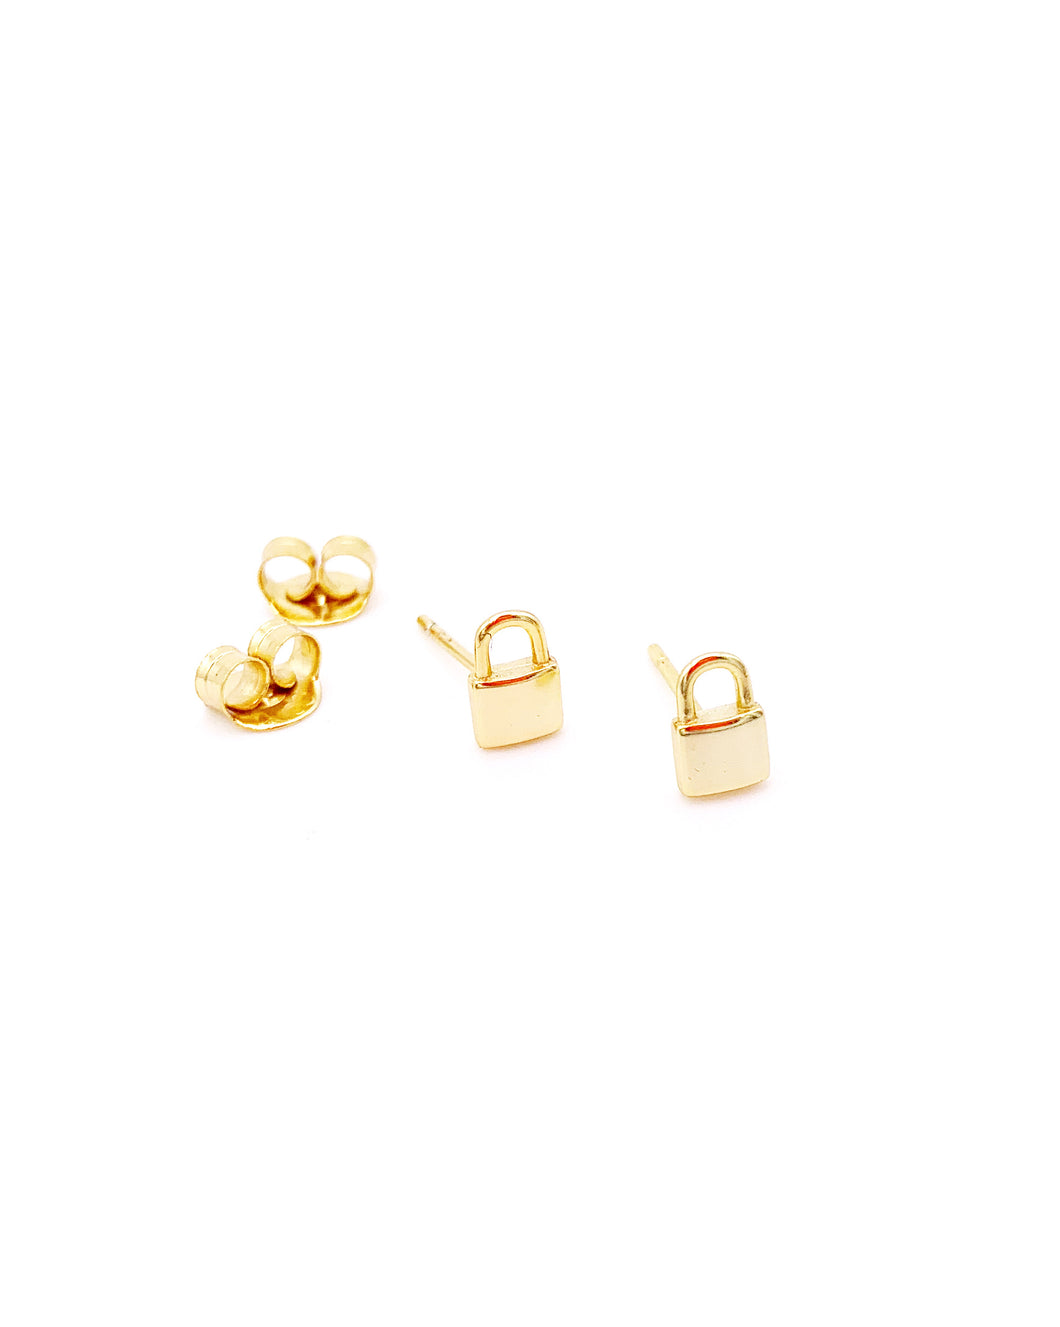 PADLOCK BUTTON EARRINGS